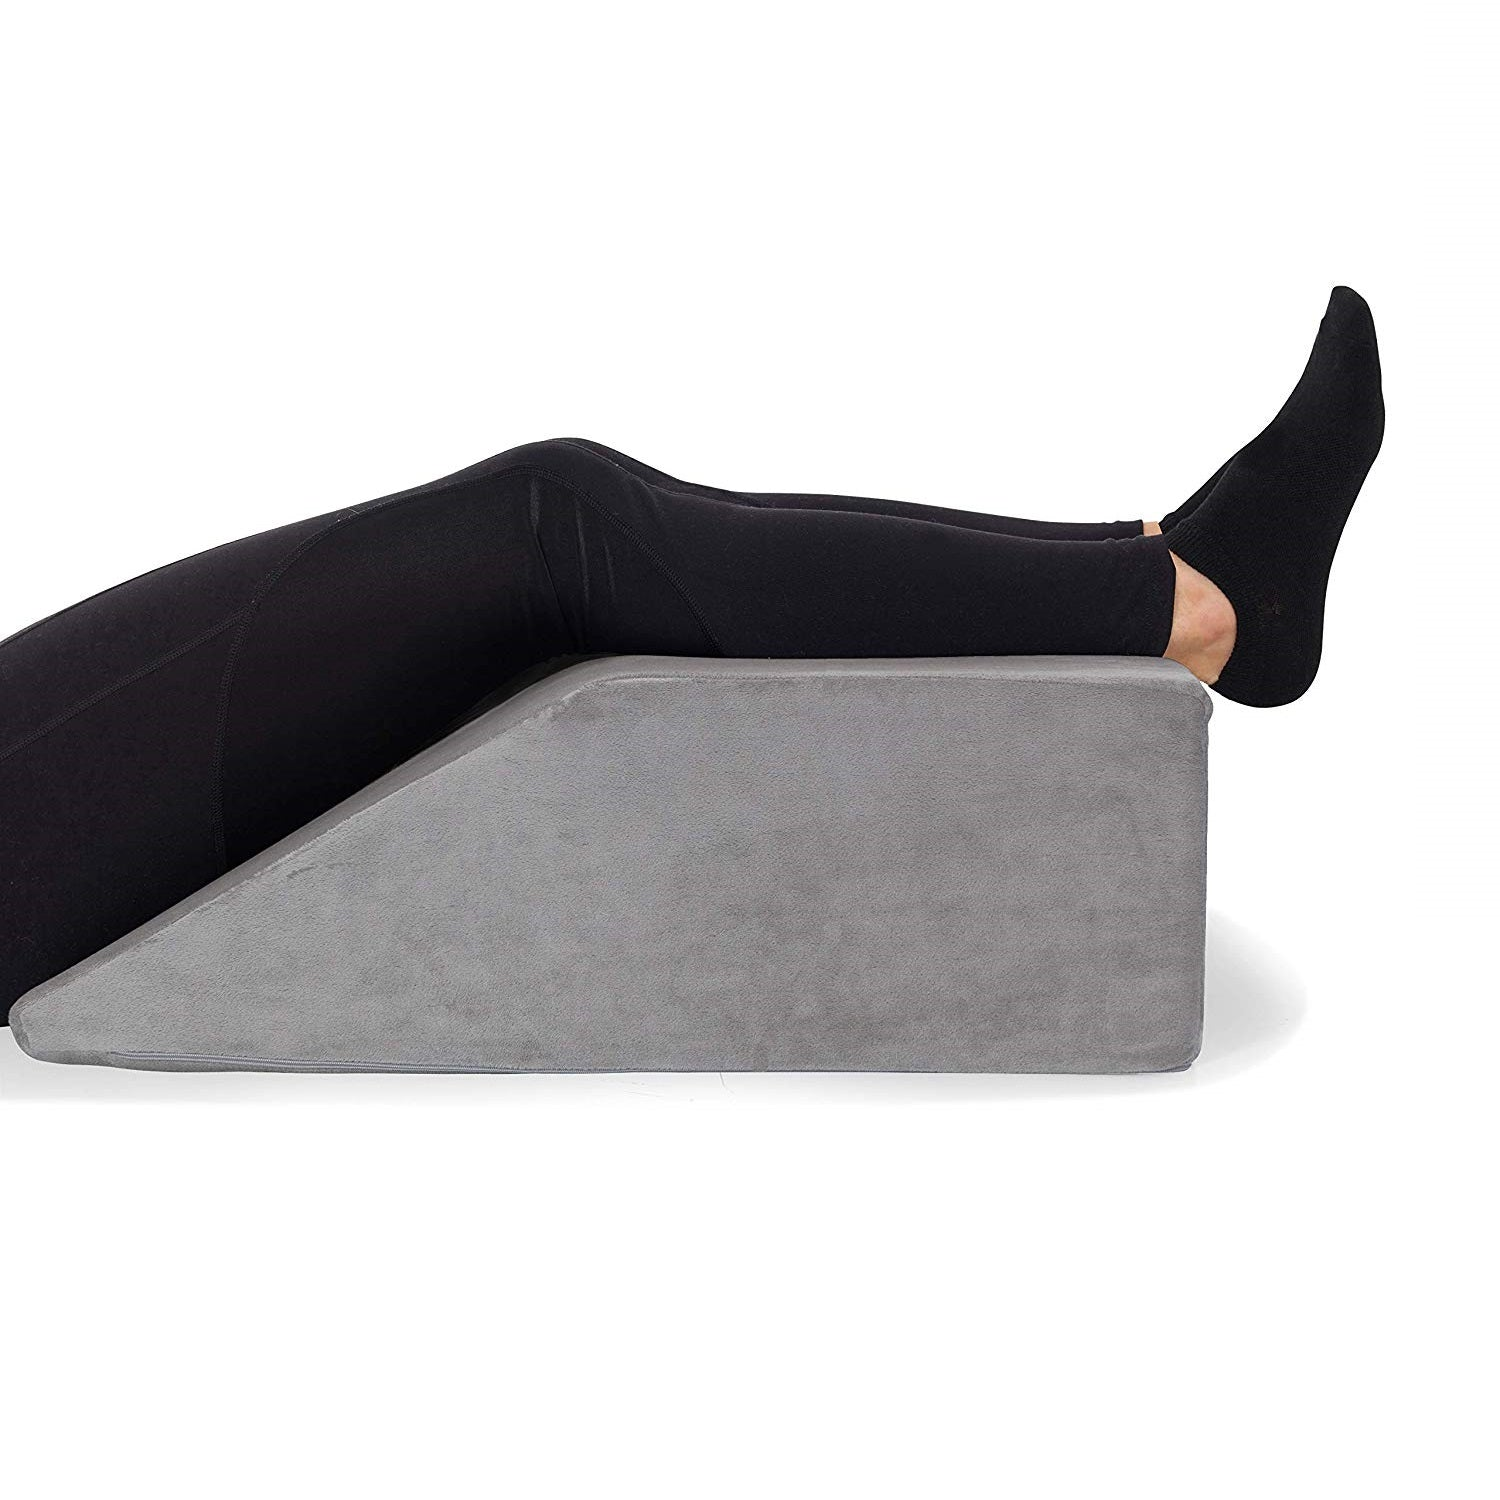 Leg Elevation Wedge Pillow, High-Density Memory Foam Leg Rest, Relieve Ankle, Leg, Hip & Knee Pain